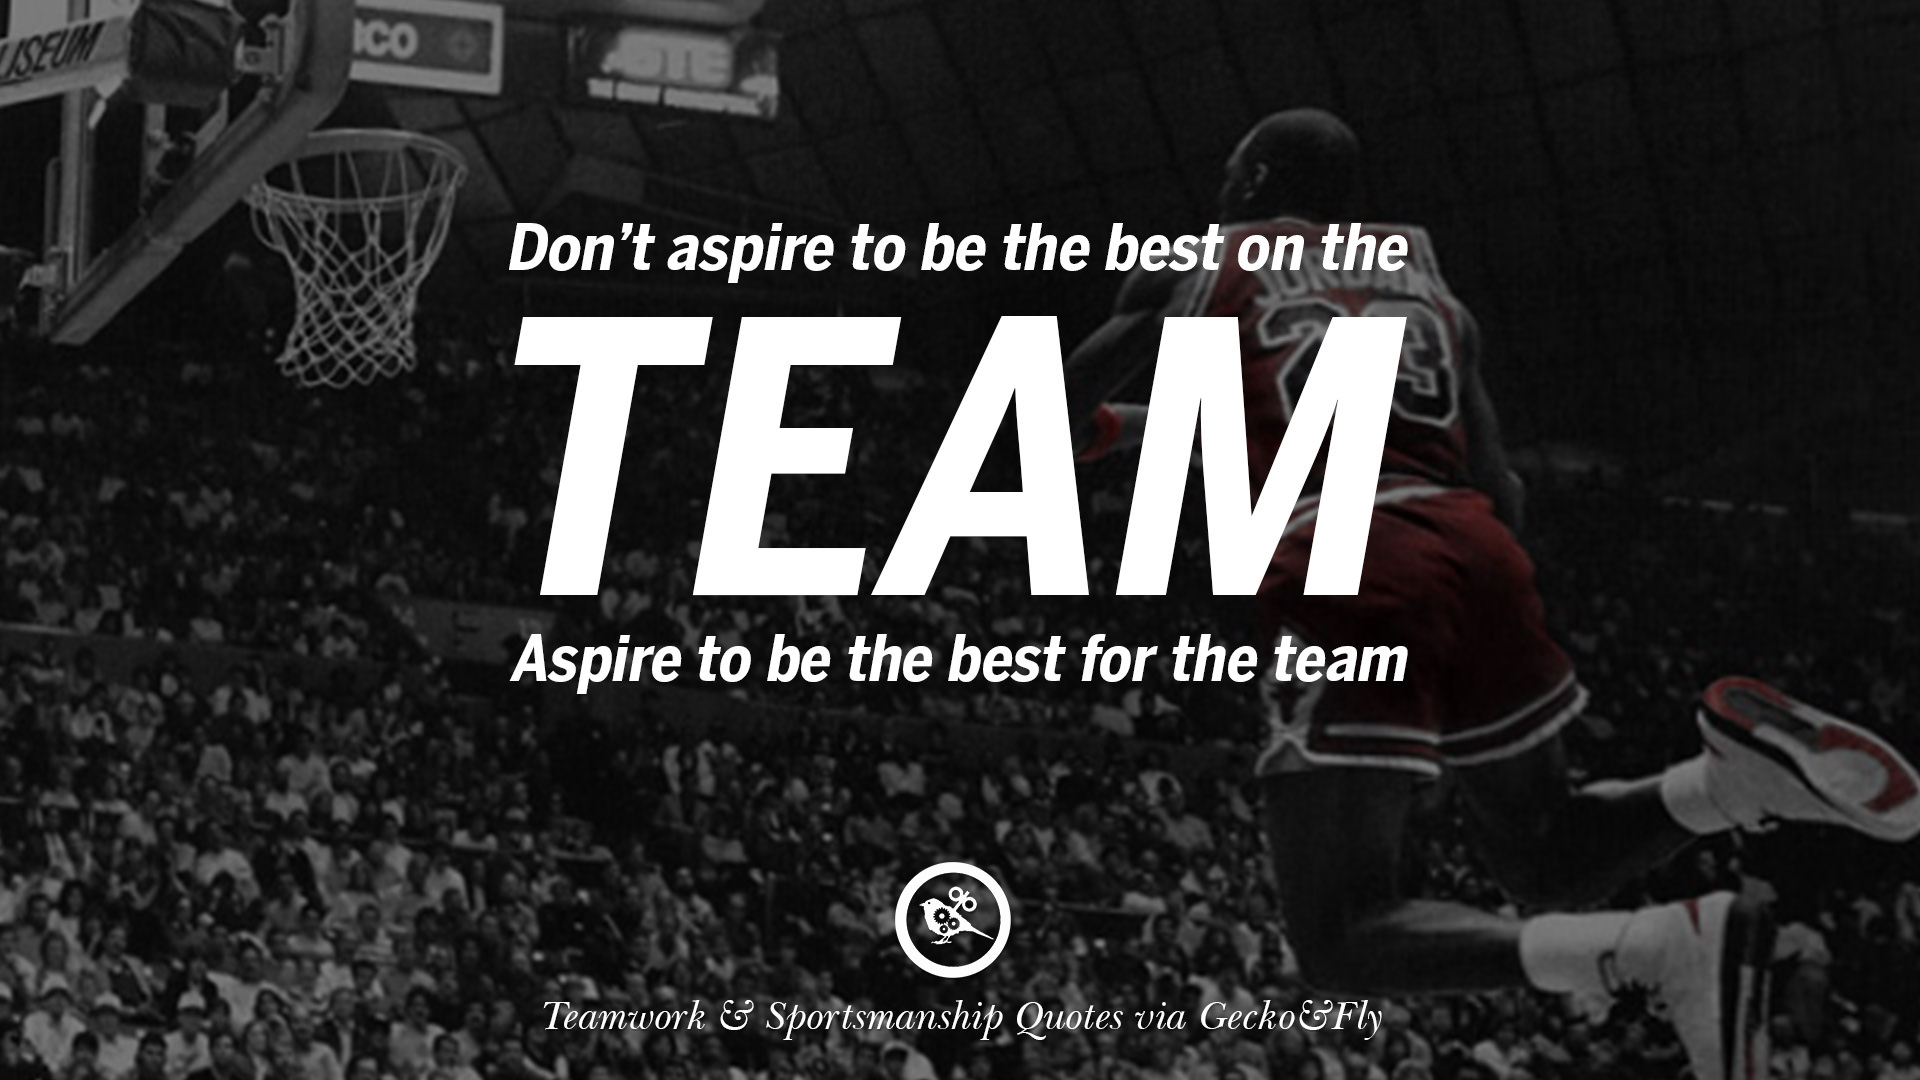 quotes teamwork sportsmanship team sports inspirational sport motivational basketball football aspire don hockey soccer geckoandfly sayings rugby saying baseball games